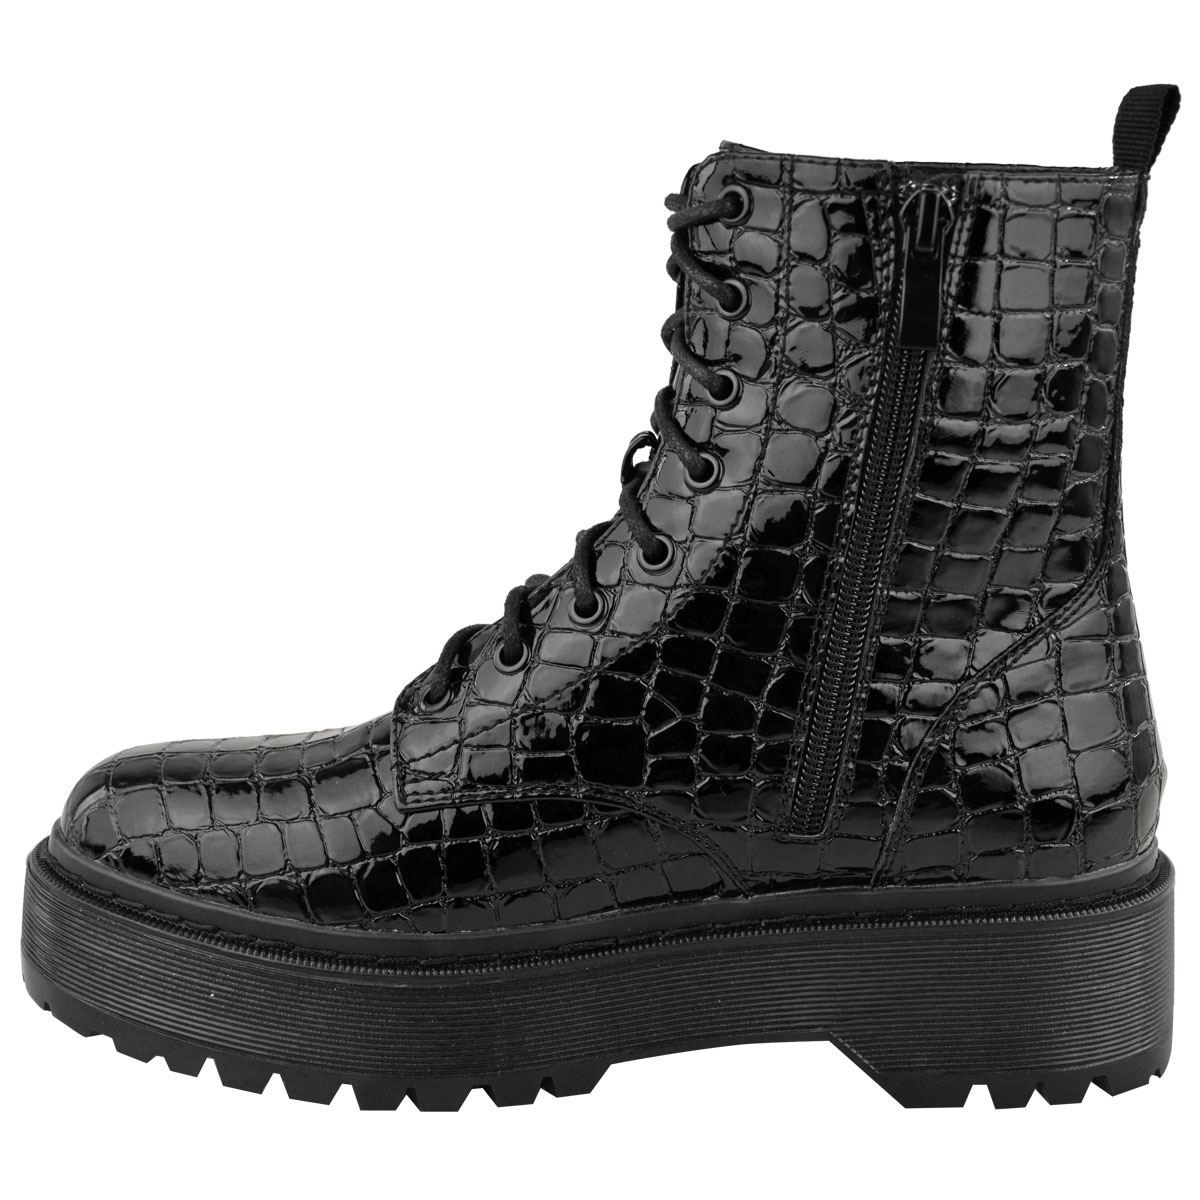 Coturno London Style Croco Inspired